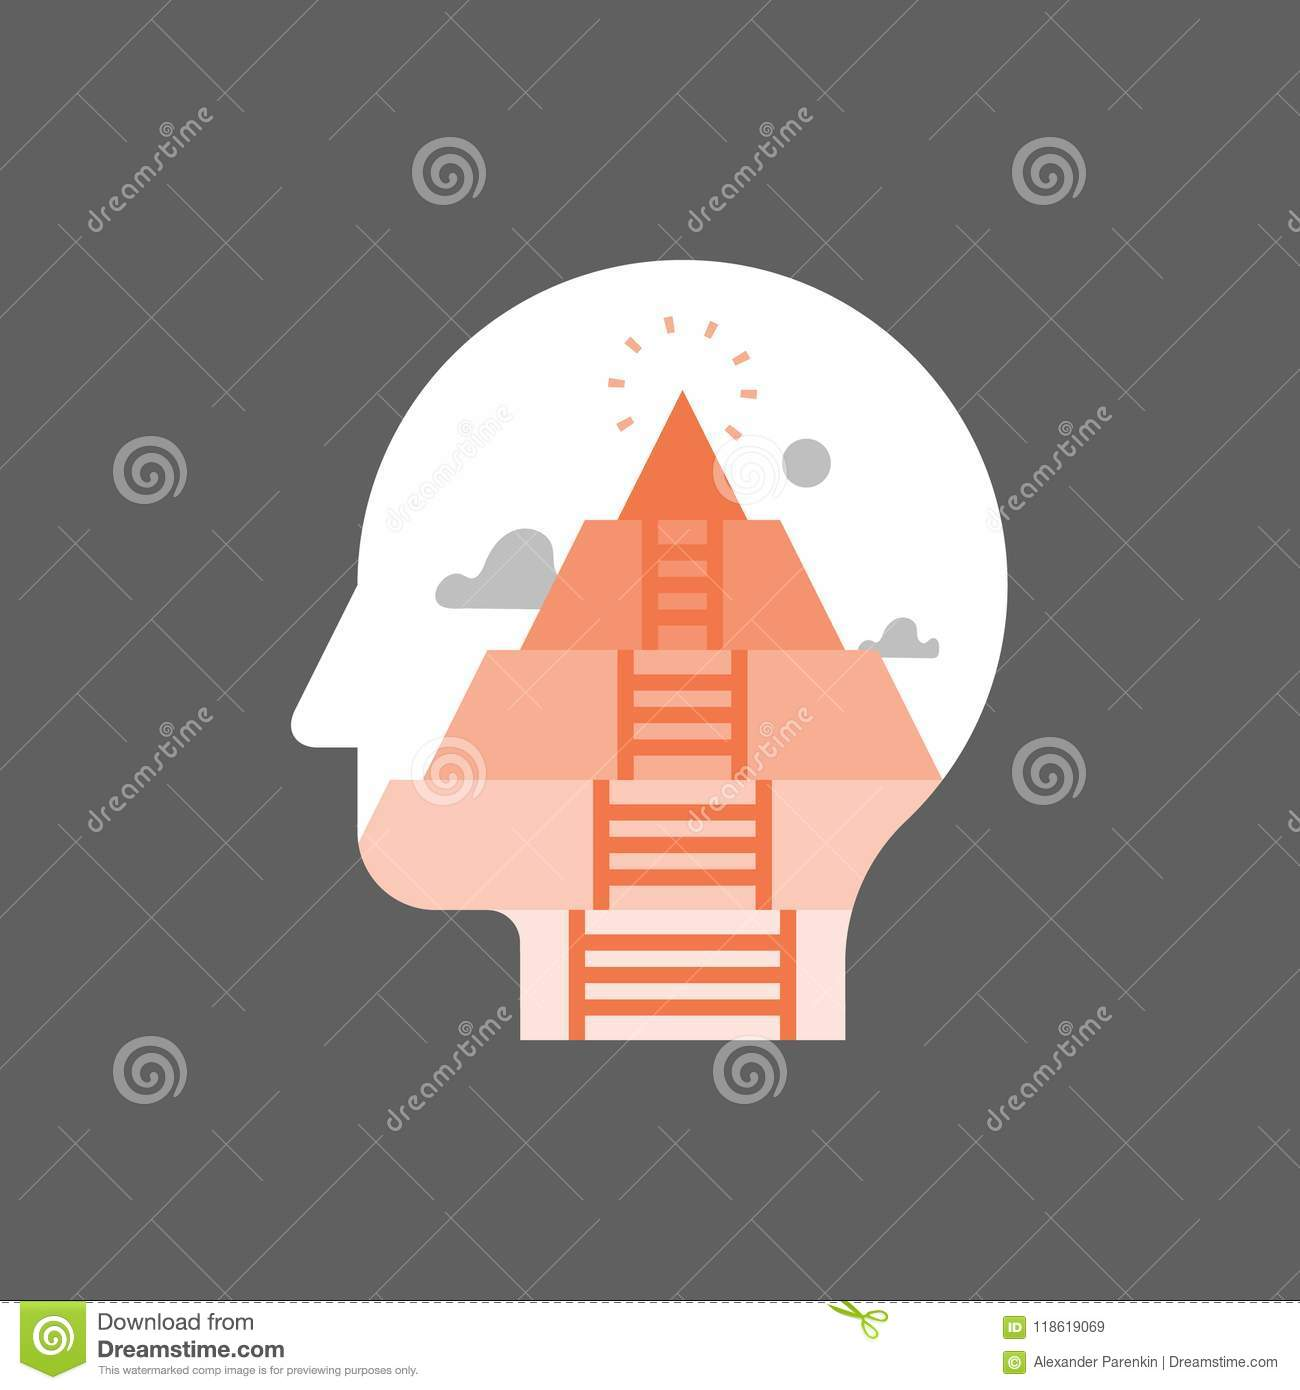 Sself awareness, pyramid of human needs, psychoanalysis concept, mental development stage, self actualization, personal growth